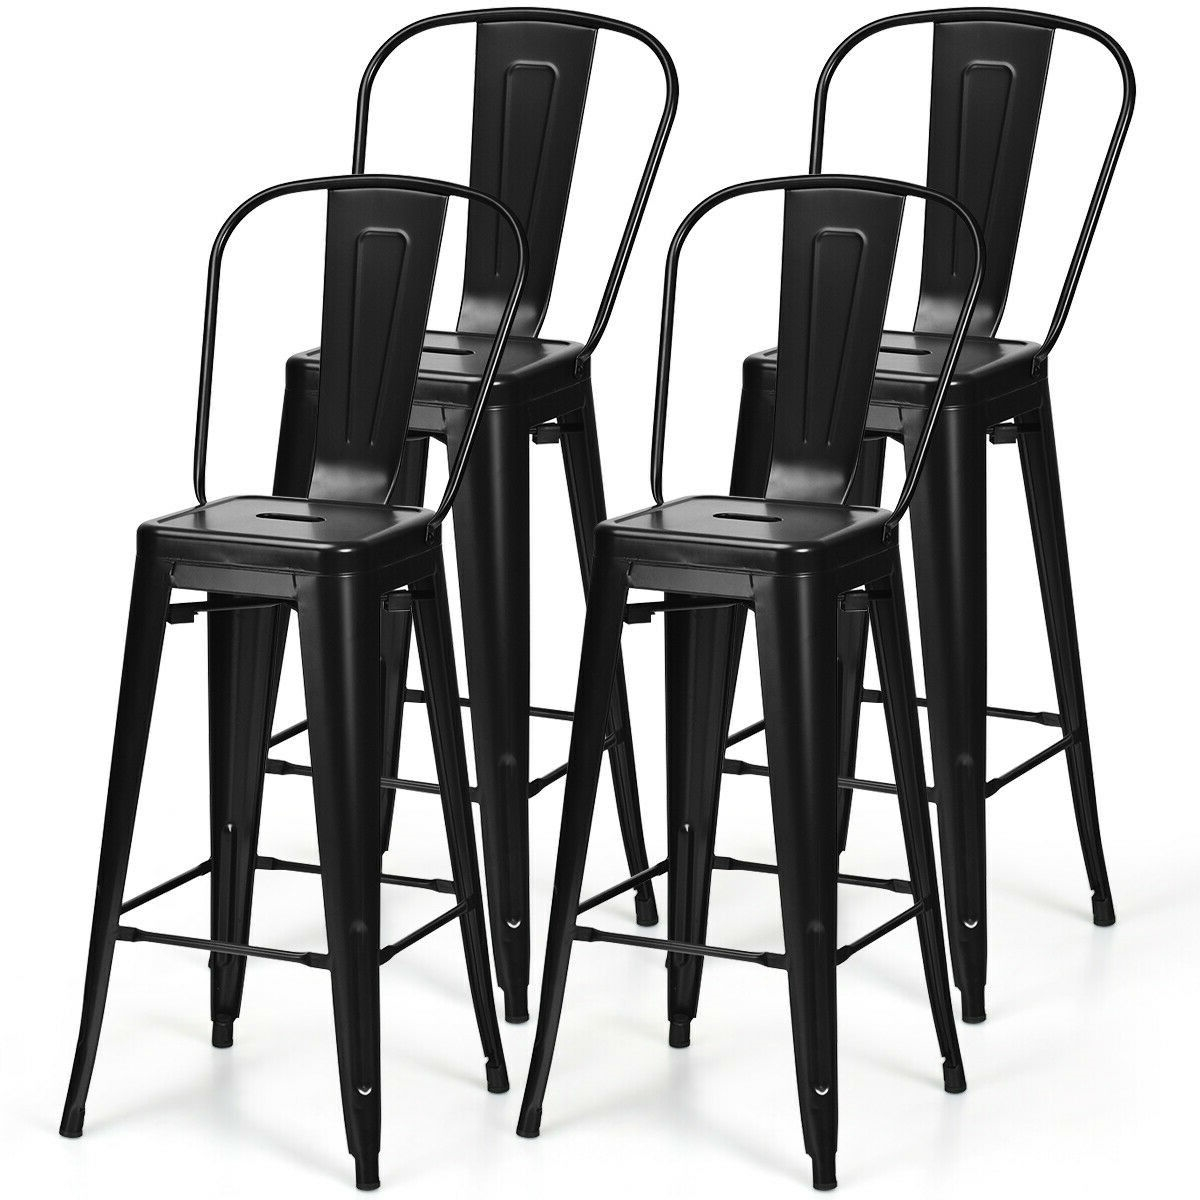 Remarkable Set Of 4 Black 30 Height High Back Metal Industrial Bar Stools Ncnpc Chair Design For Home Ncnpcorg